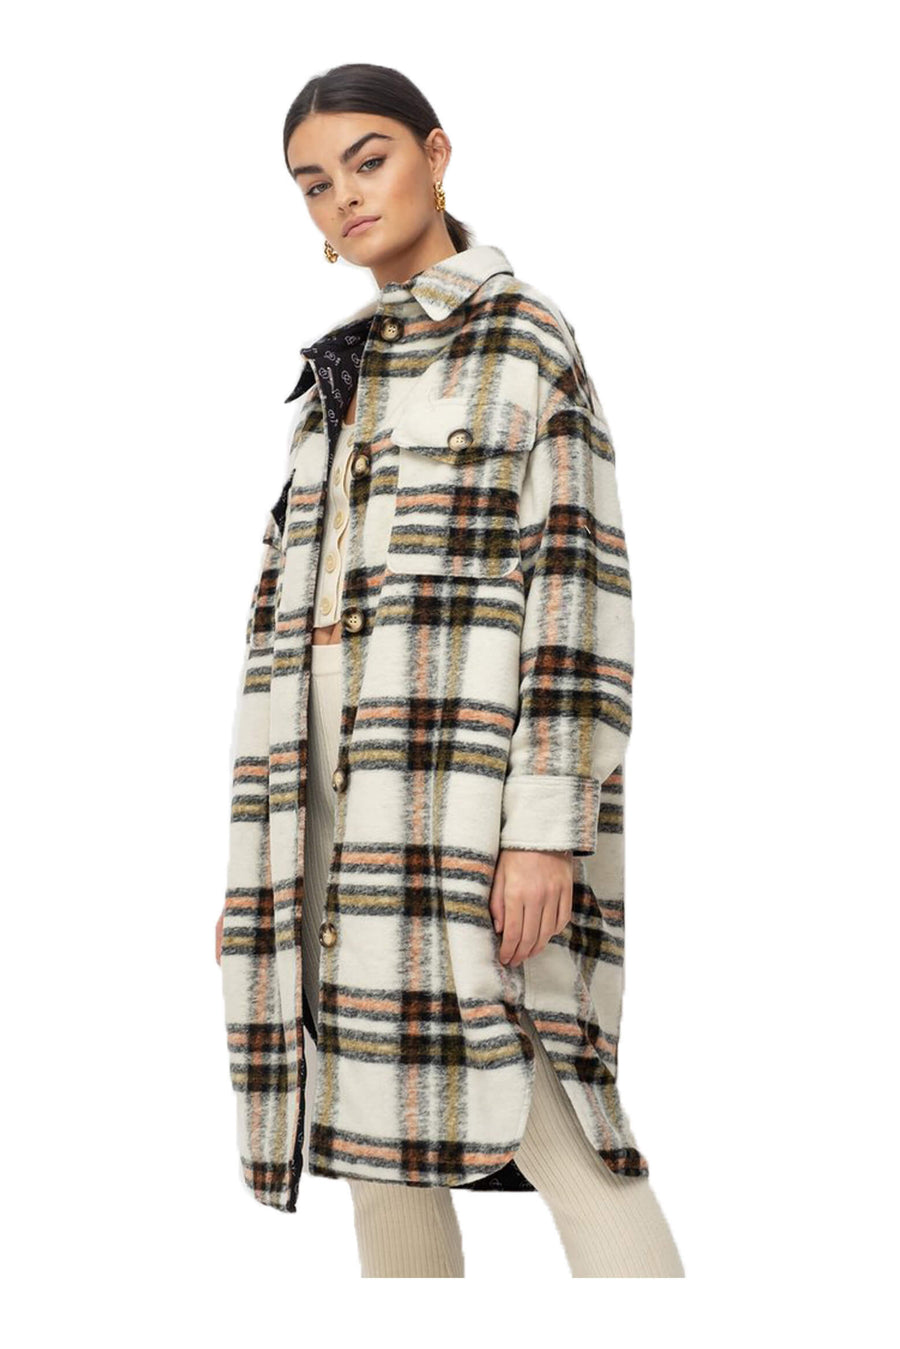 Ducie London Exclusive Check Oversize Shirt Long from The New Trend